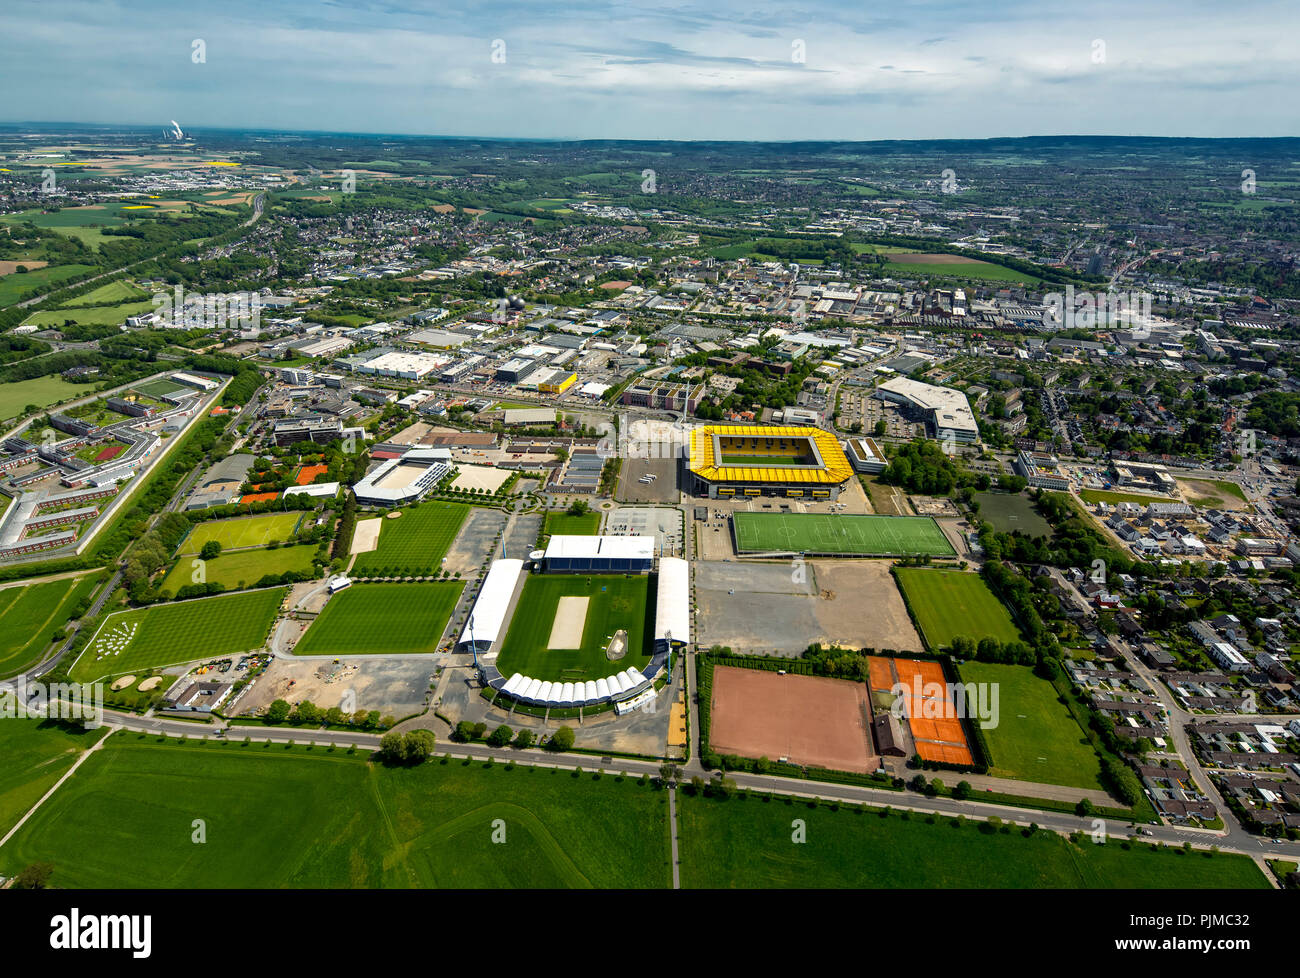 Aachen-Laurensberger Rennverein eV in front, Tivoli, football stadium of Alemannia Aachen, Aachen, Meuse-Rhine Euroregion, North Rhine-Westphalia, Germany - Stock Image